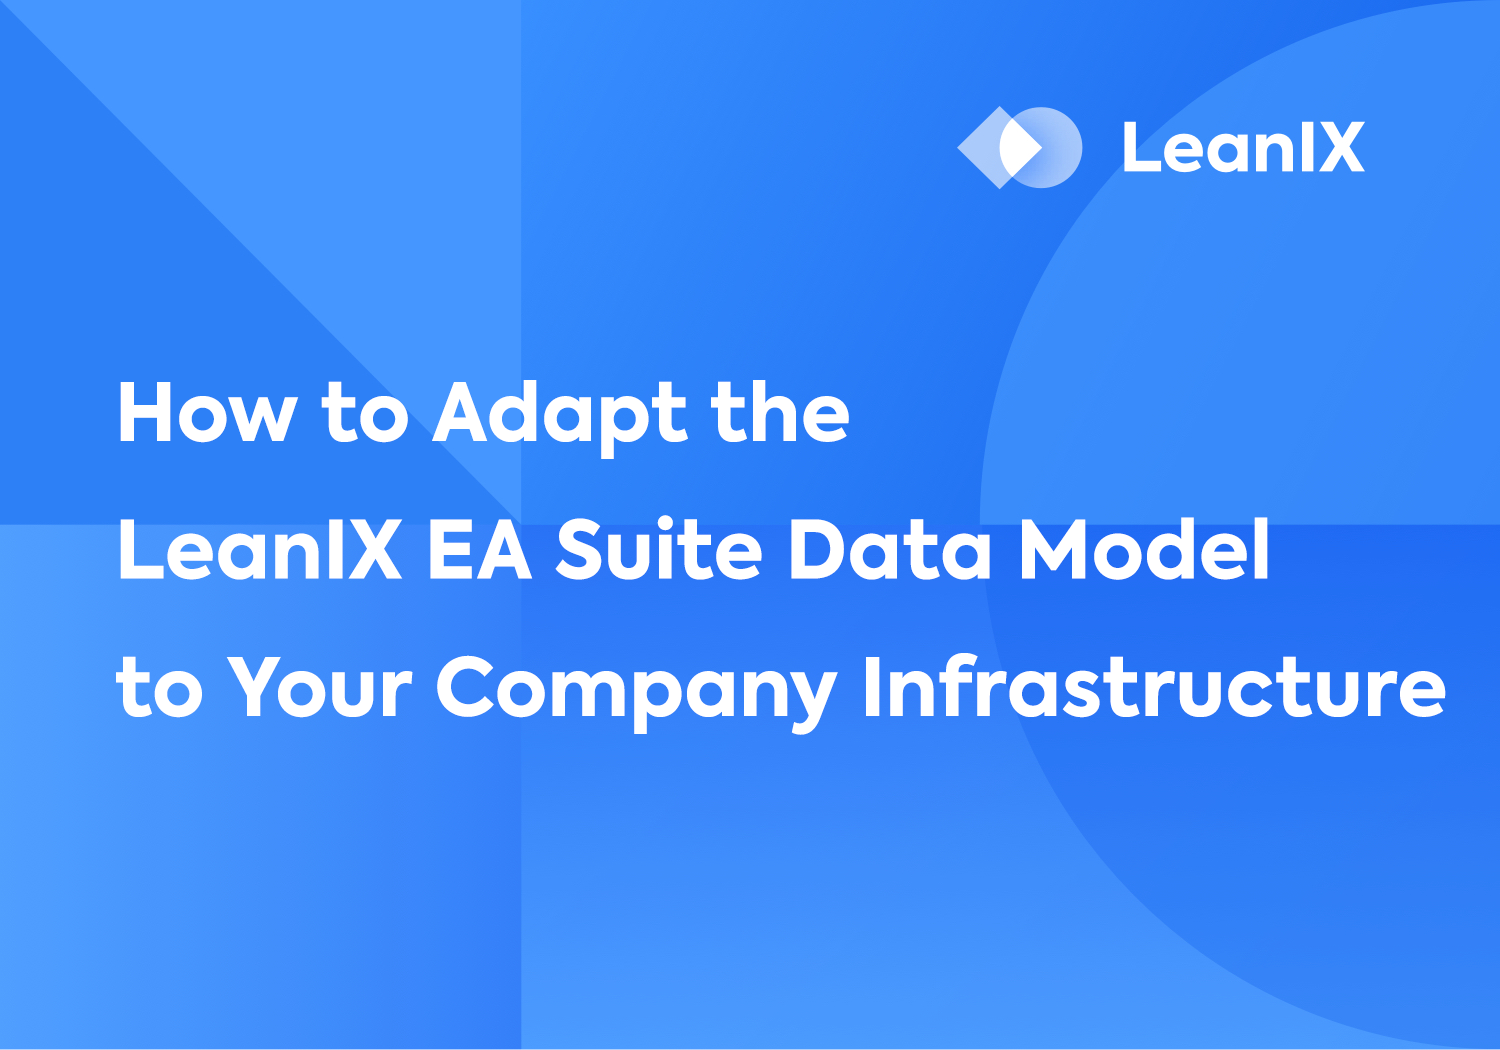 Presentation: How to Adapt the LeanIX EA Suite Data Model to Your Company Infrastructure